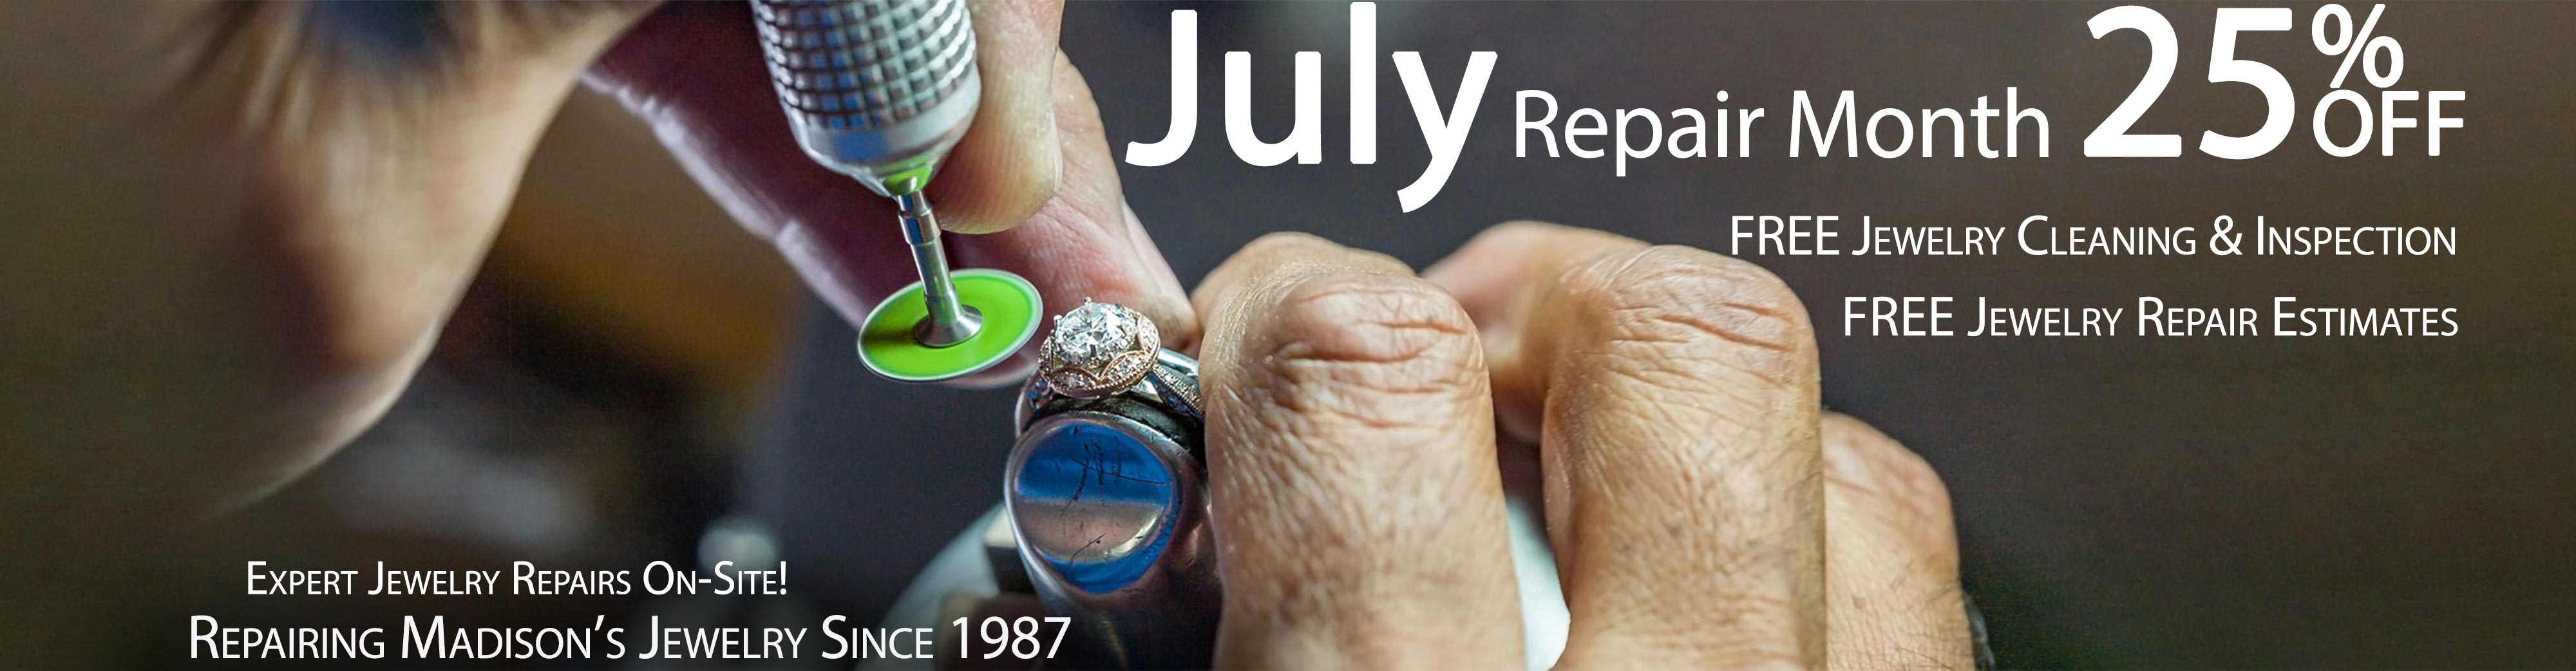 July 2019 Jewelry Repair Month